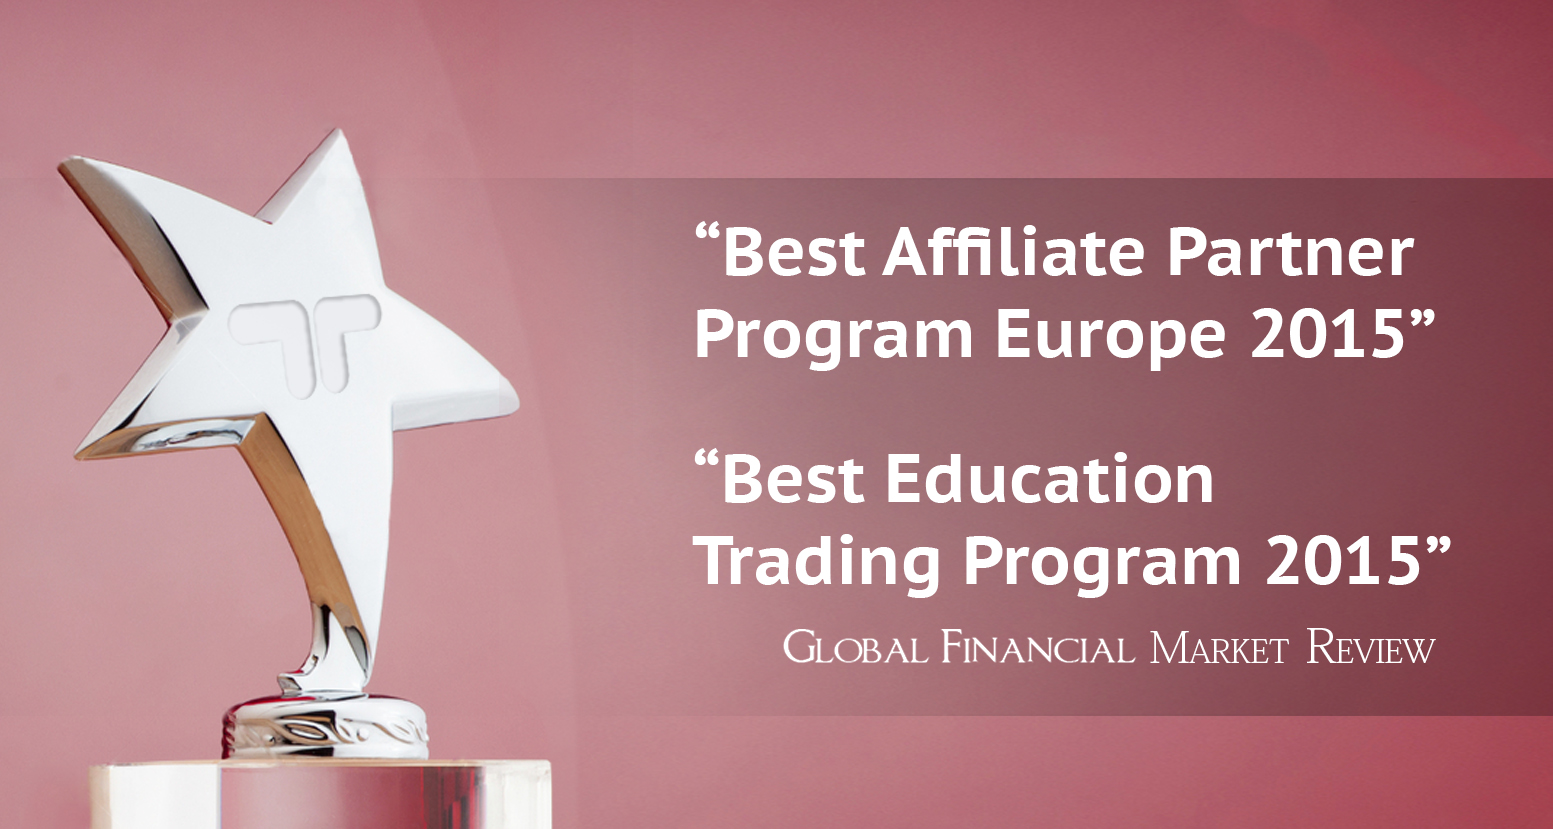 Best Education Trading